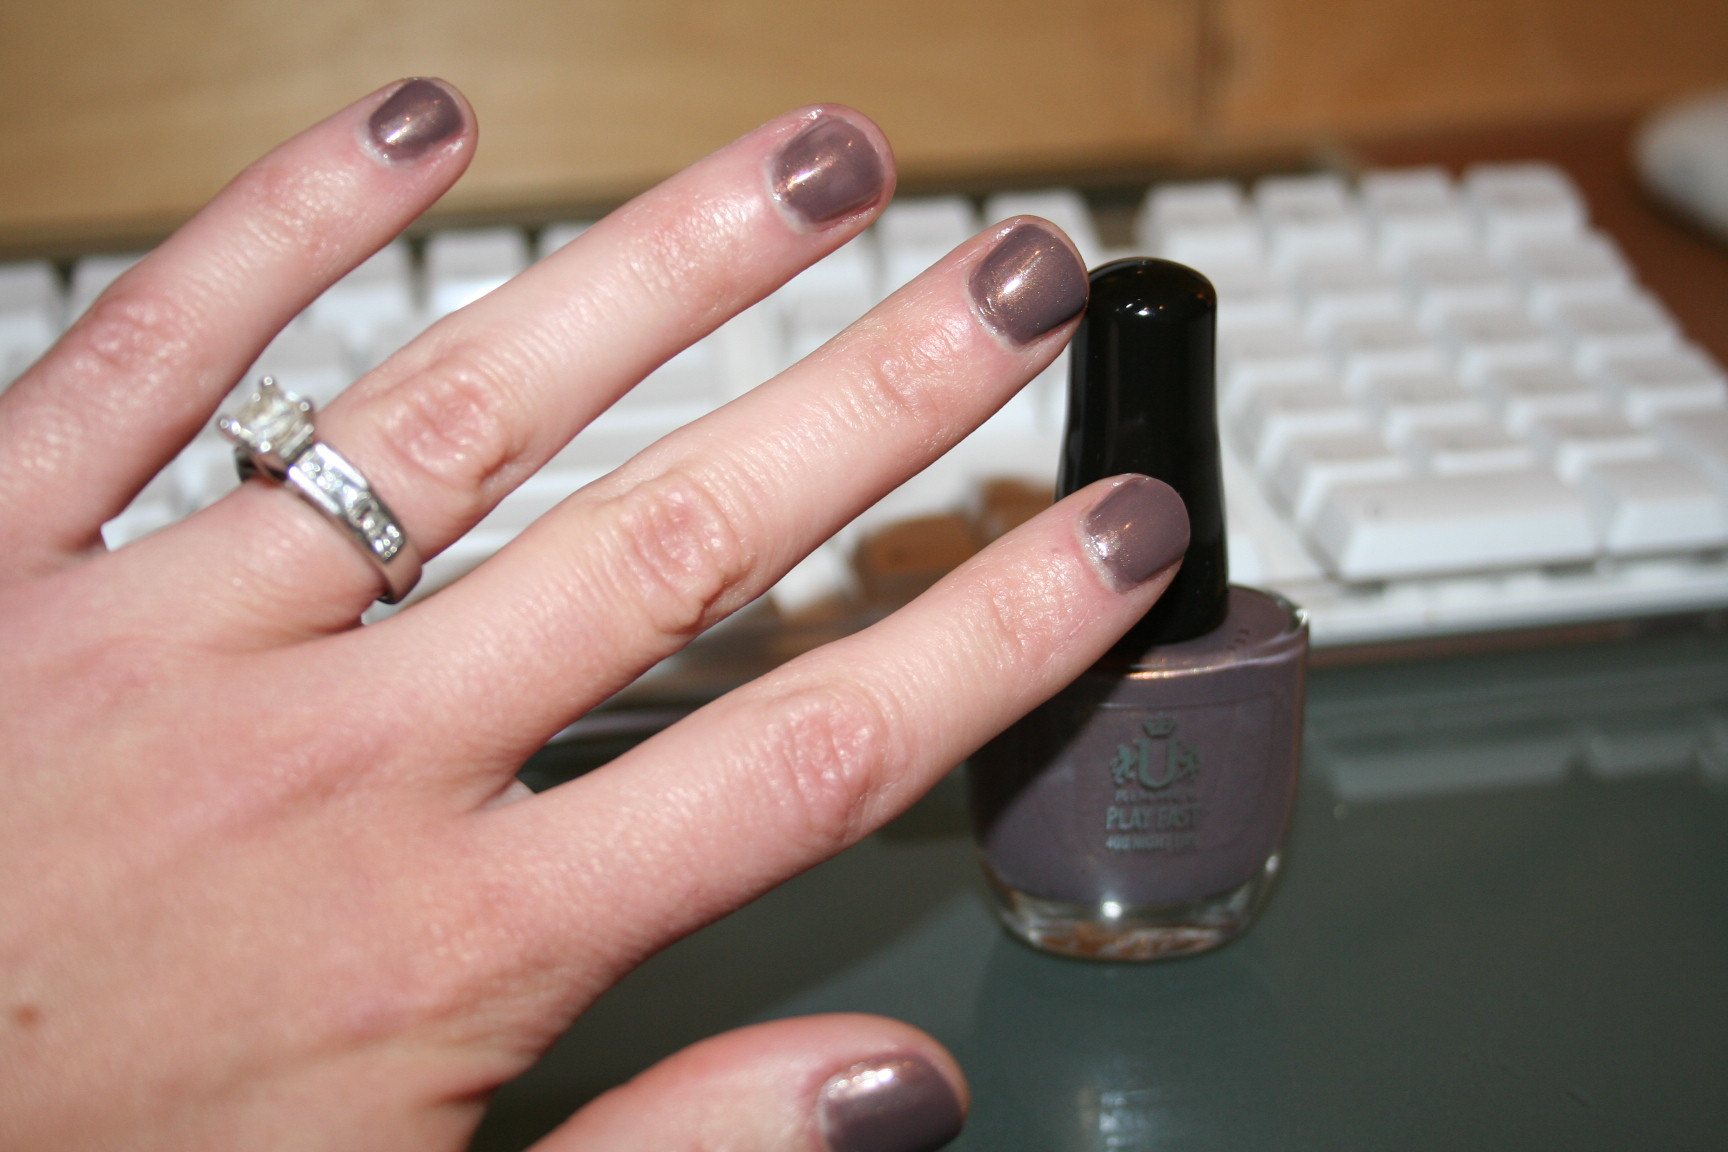 Trend Alert: Grey (Gray?) Nail Polish! - The Fashionable Housewife